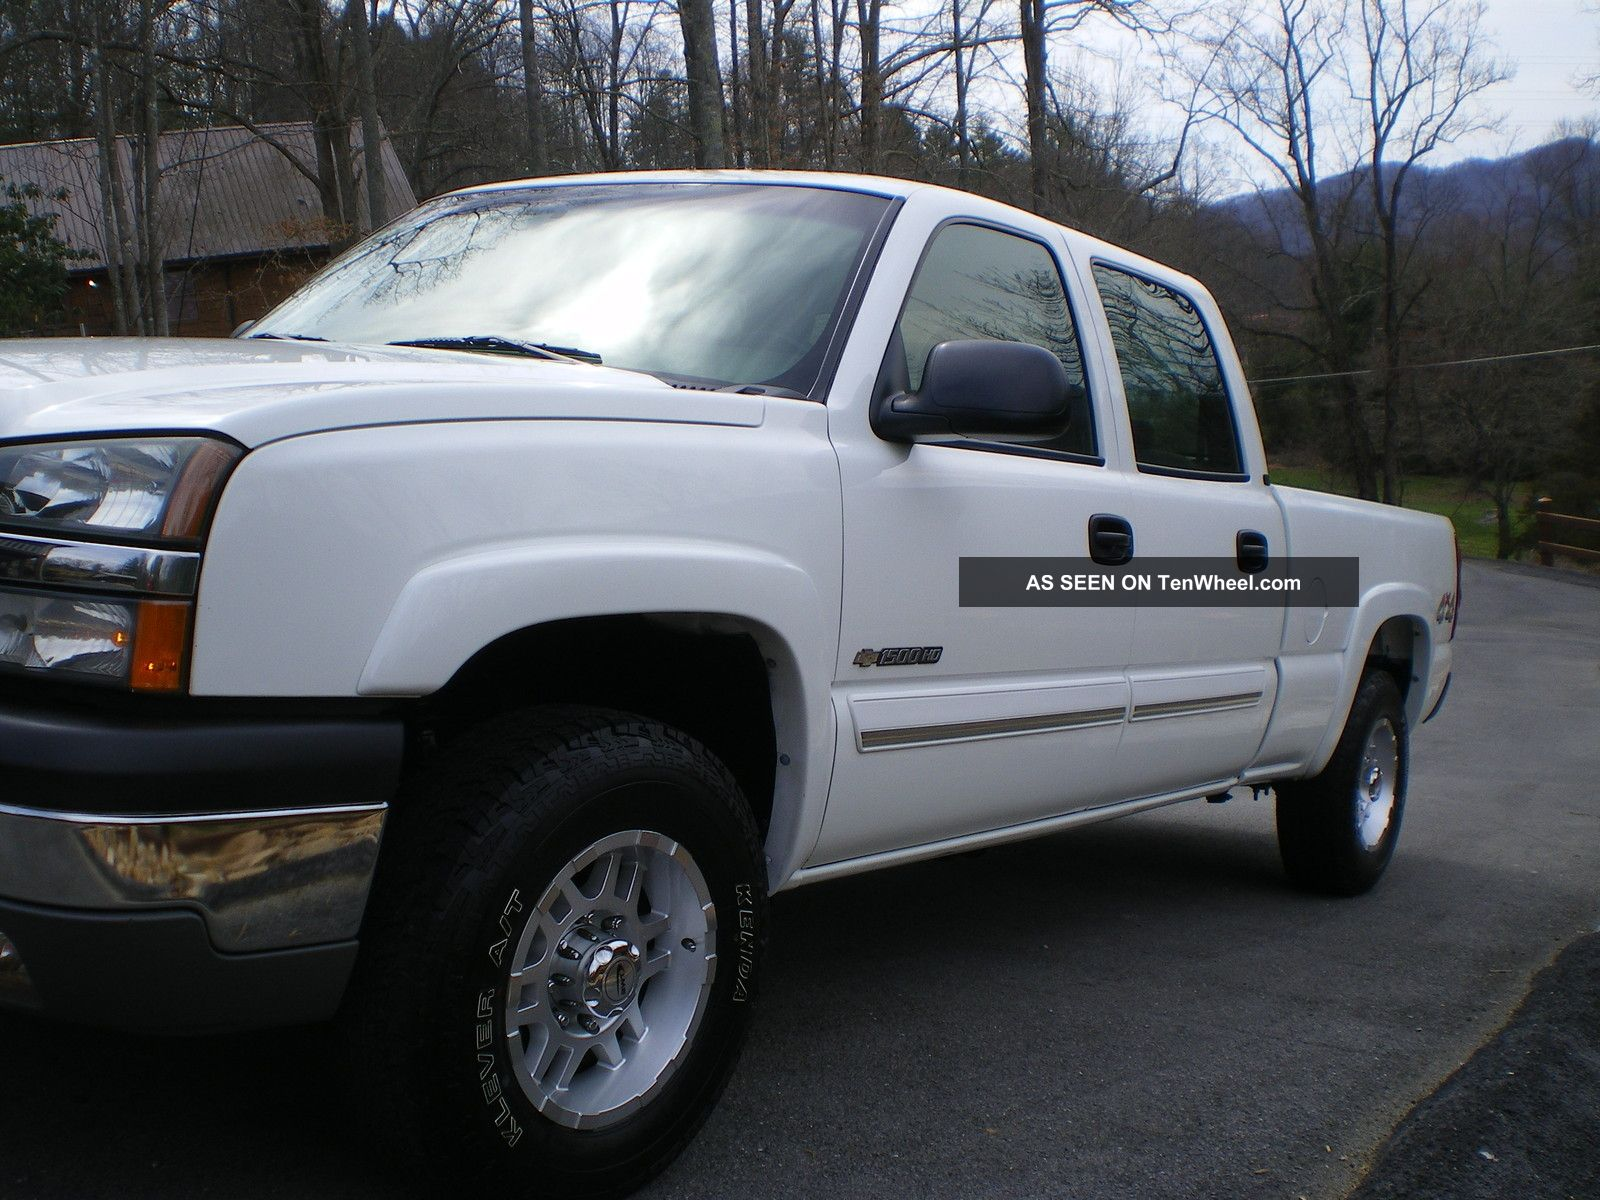 2003 chevrolet silverado 1500 hd ls crew cab pickup 4 door 6 0l 4x4. Black Bedroom Furniture Sets. Home Design Ideas